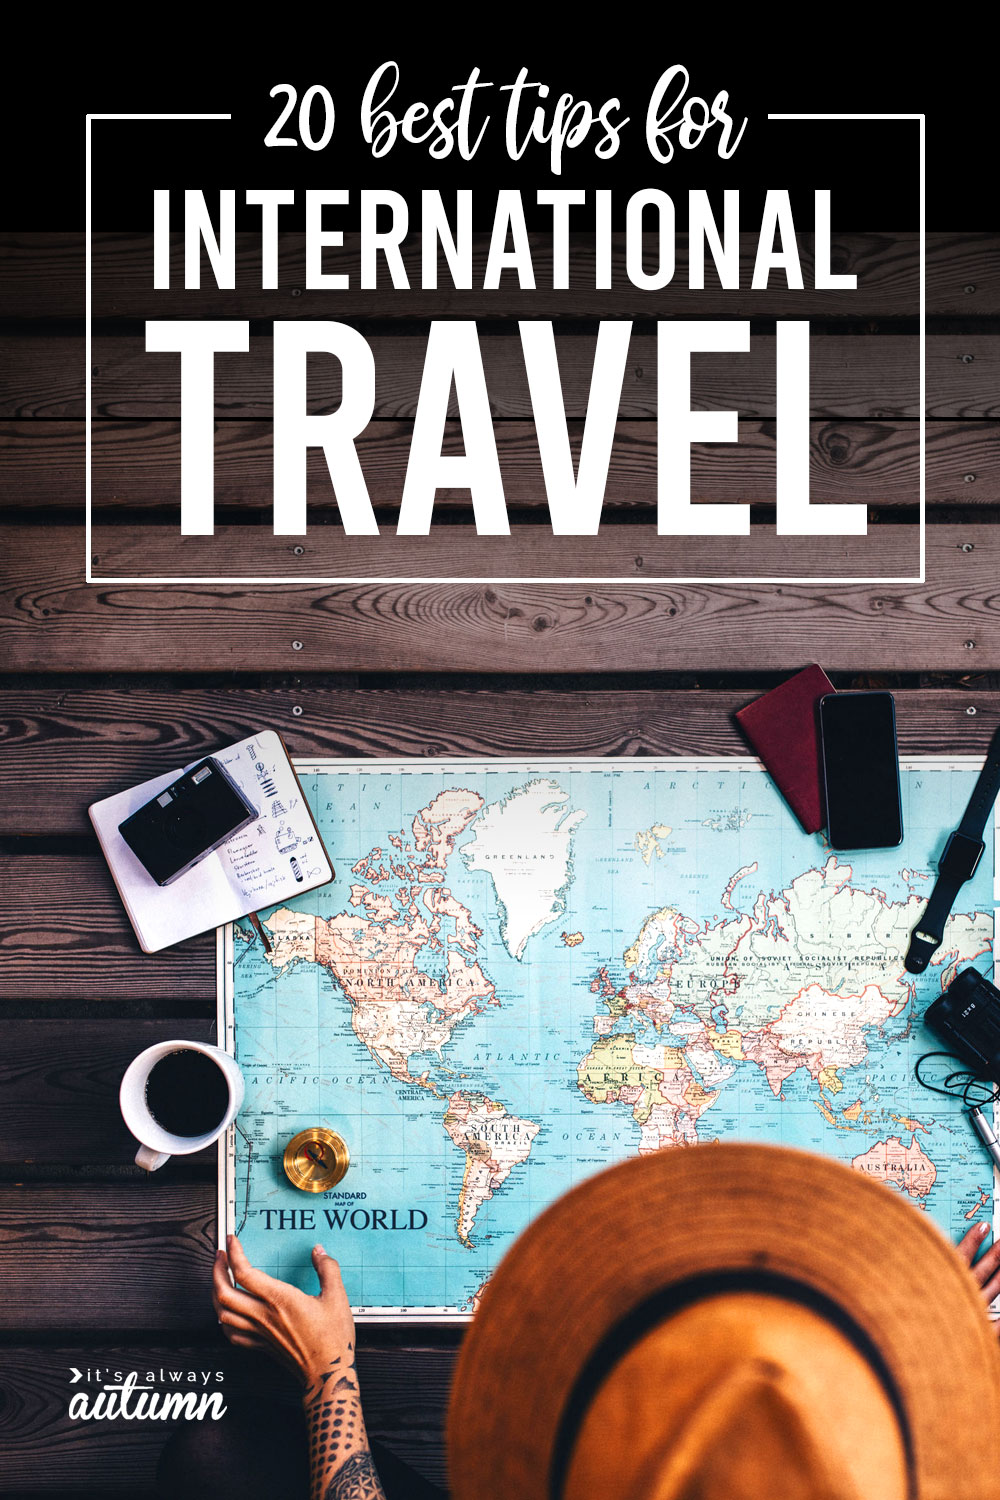 World map and travel items; 20 best tips for international travel